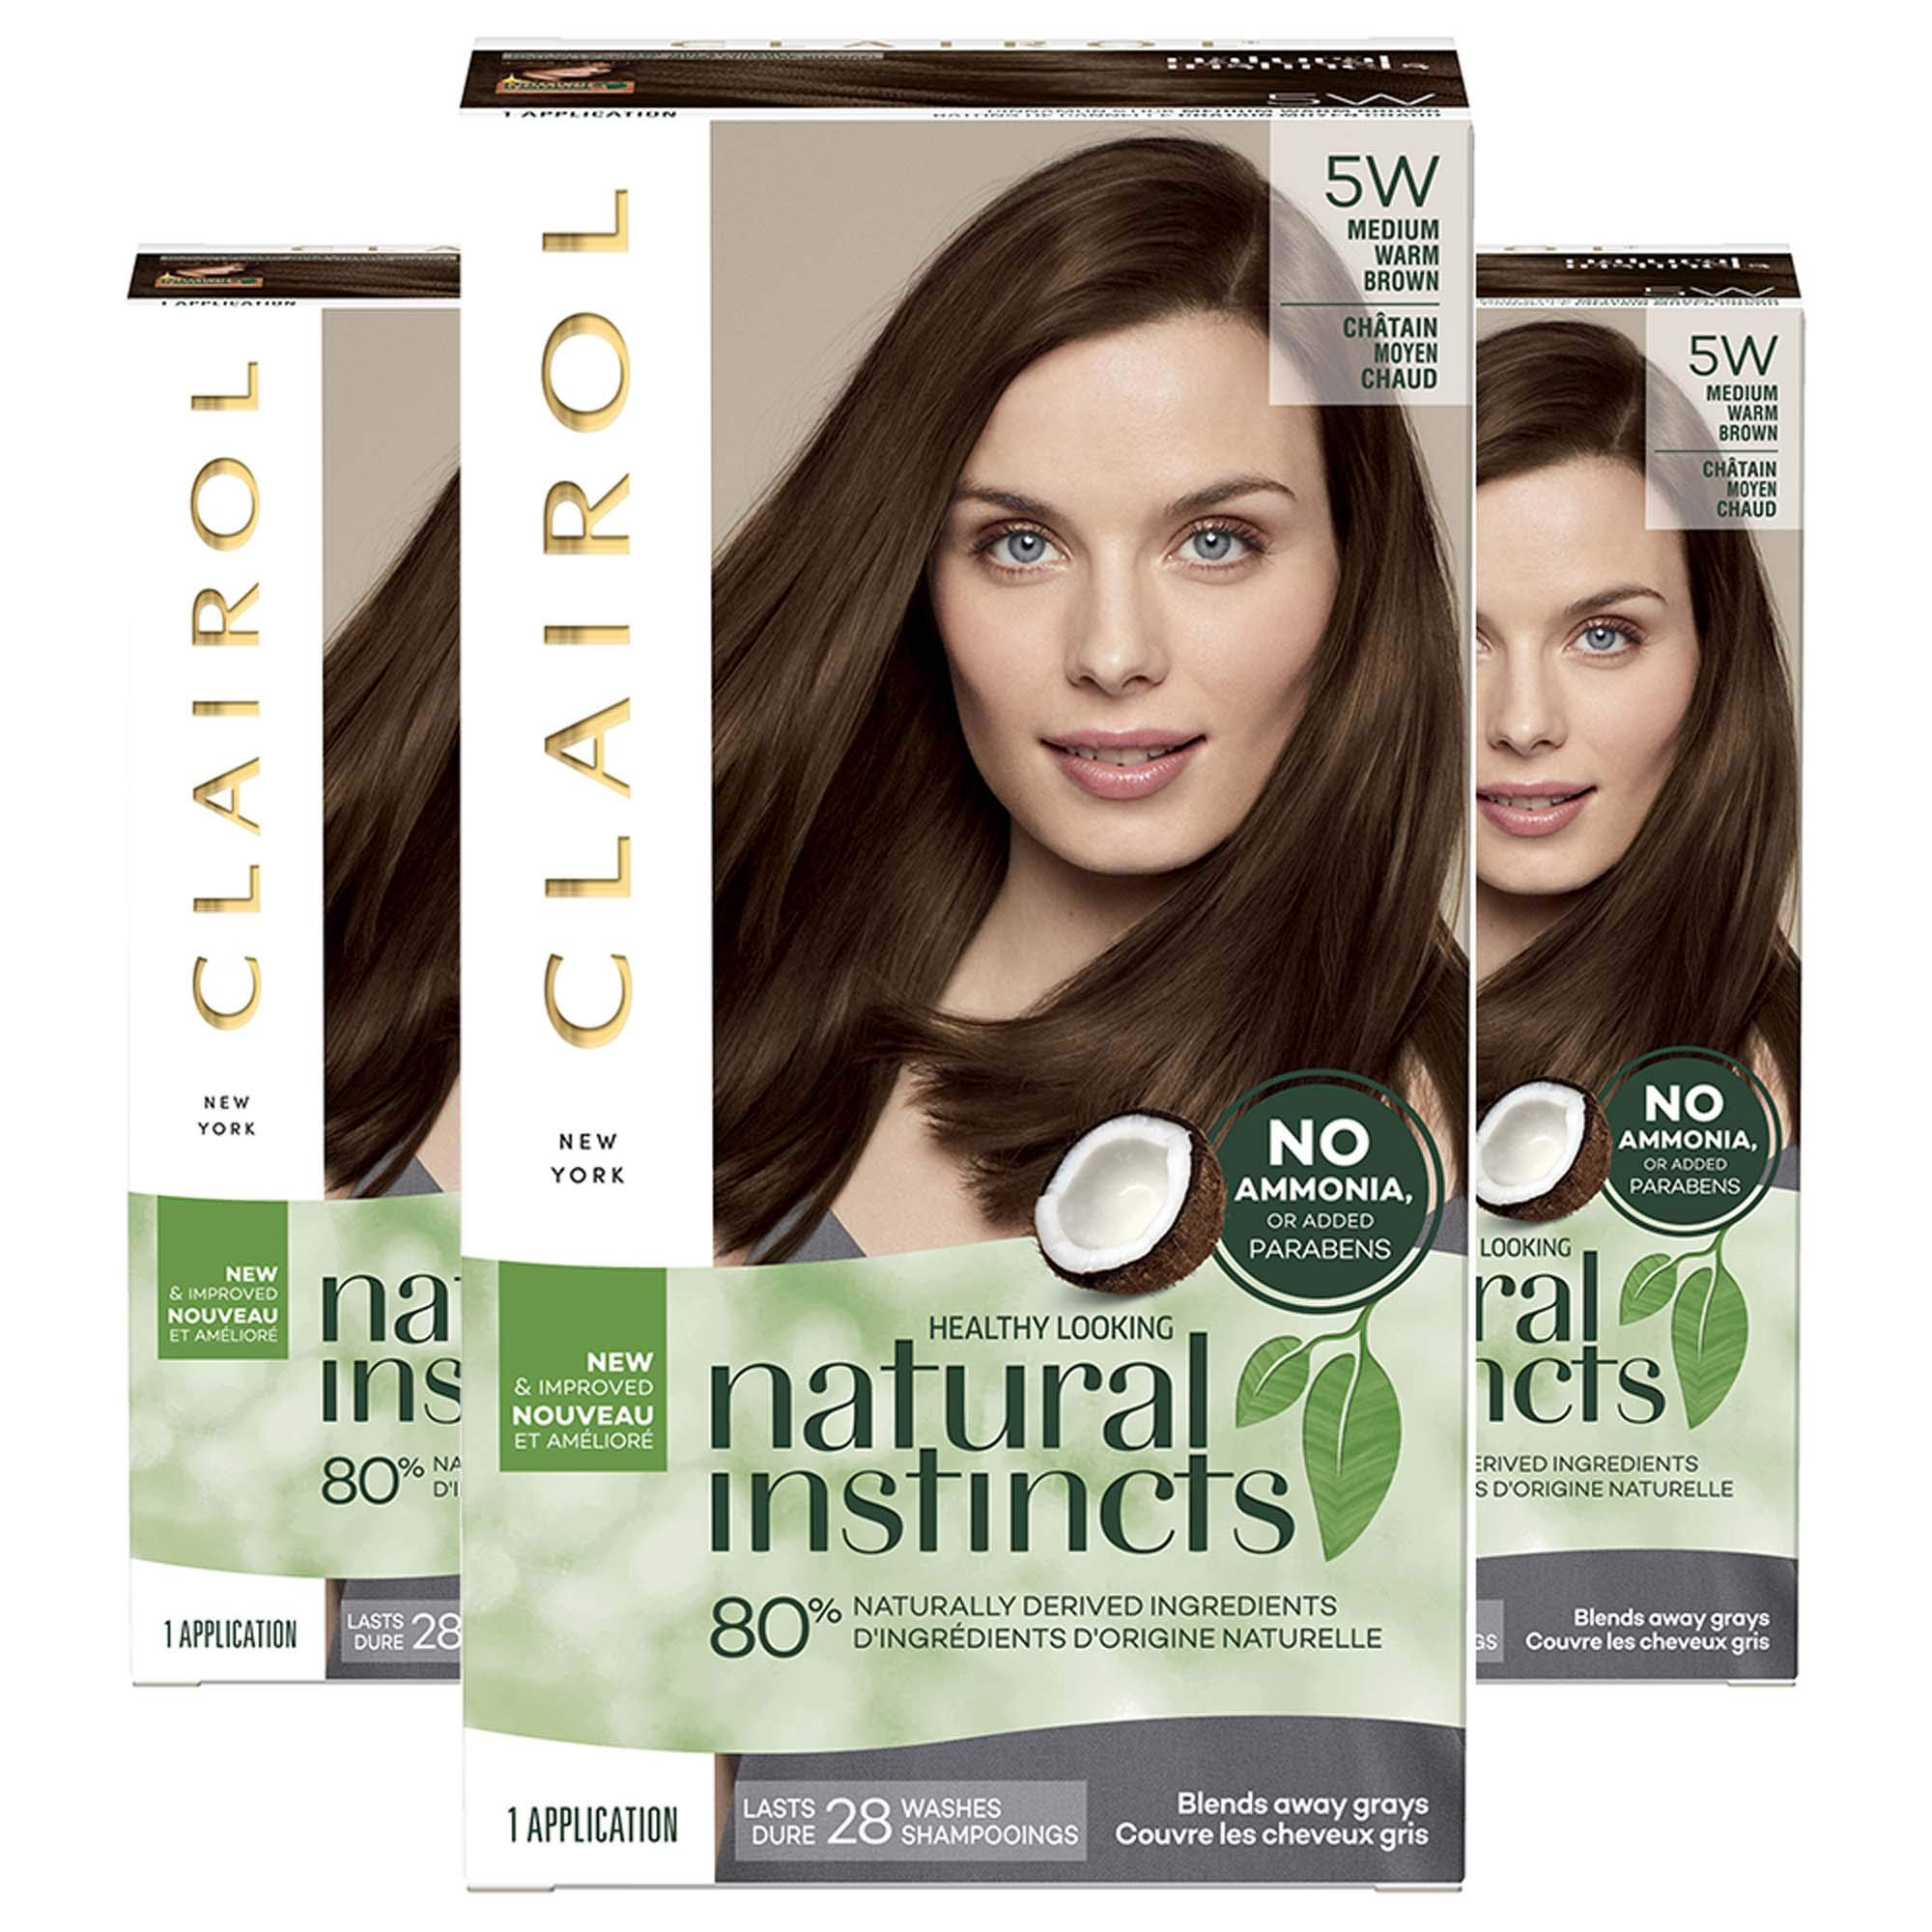 Clairol Natural Instincts Semi-Permanent Ammonia-Free Hair Color, 5W Medium Warm Brown, Cinnamon Stick, Pack of 3 by Clairol